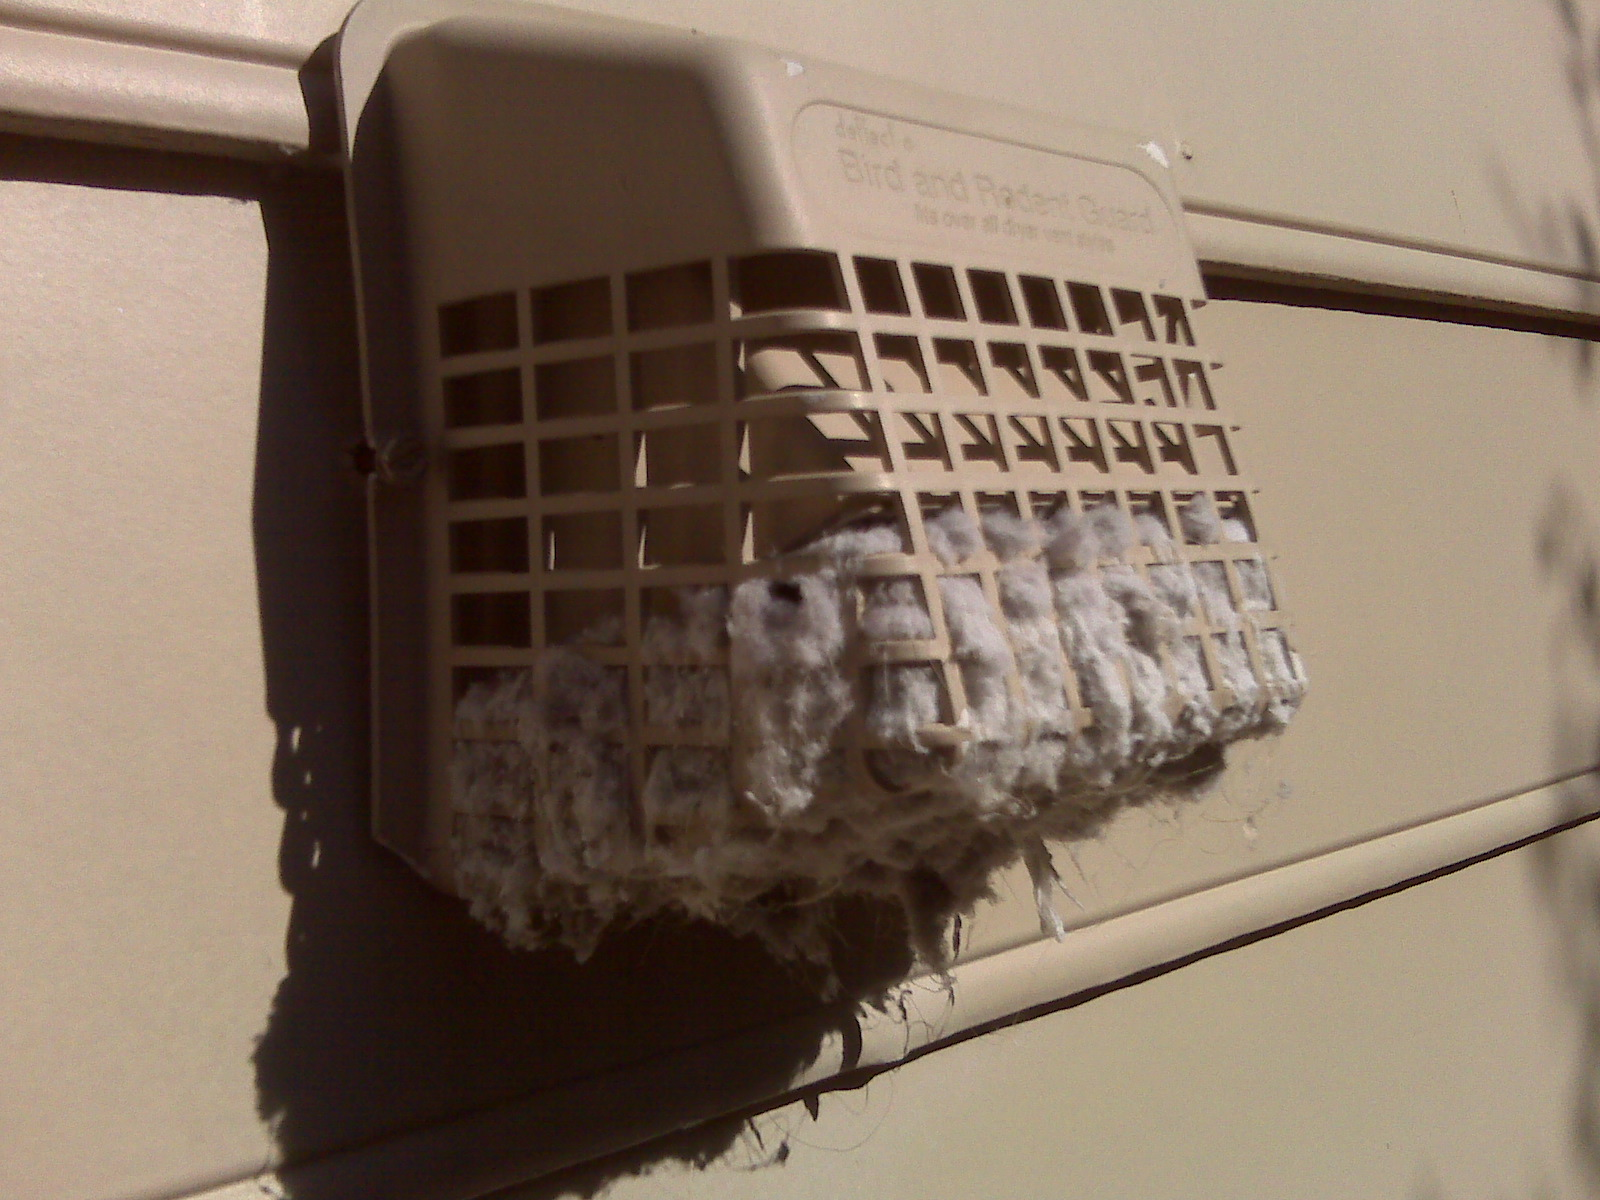 Dryer Vent Cleaning Charlotte Dryer Vent Wizard Joins